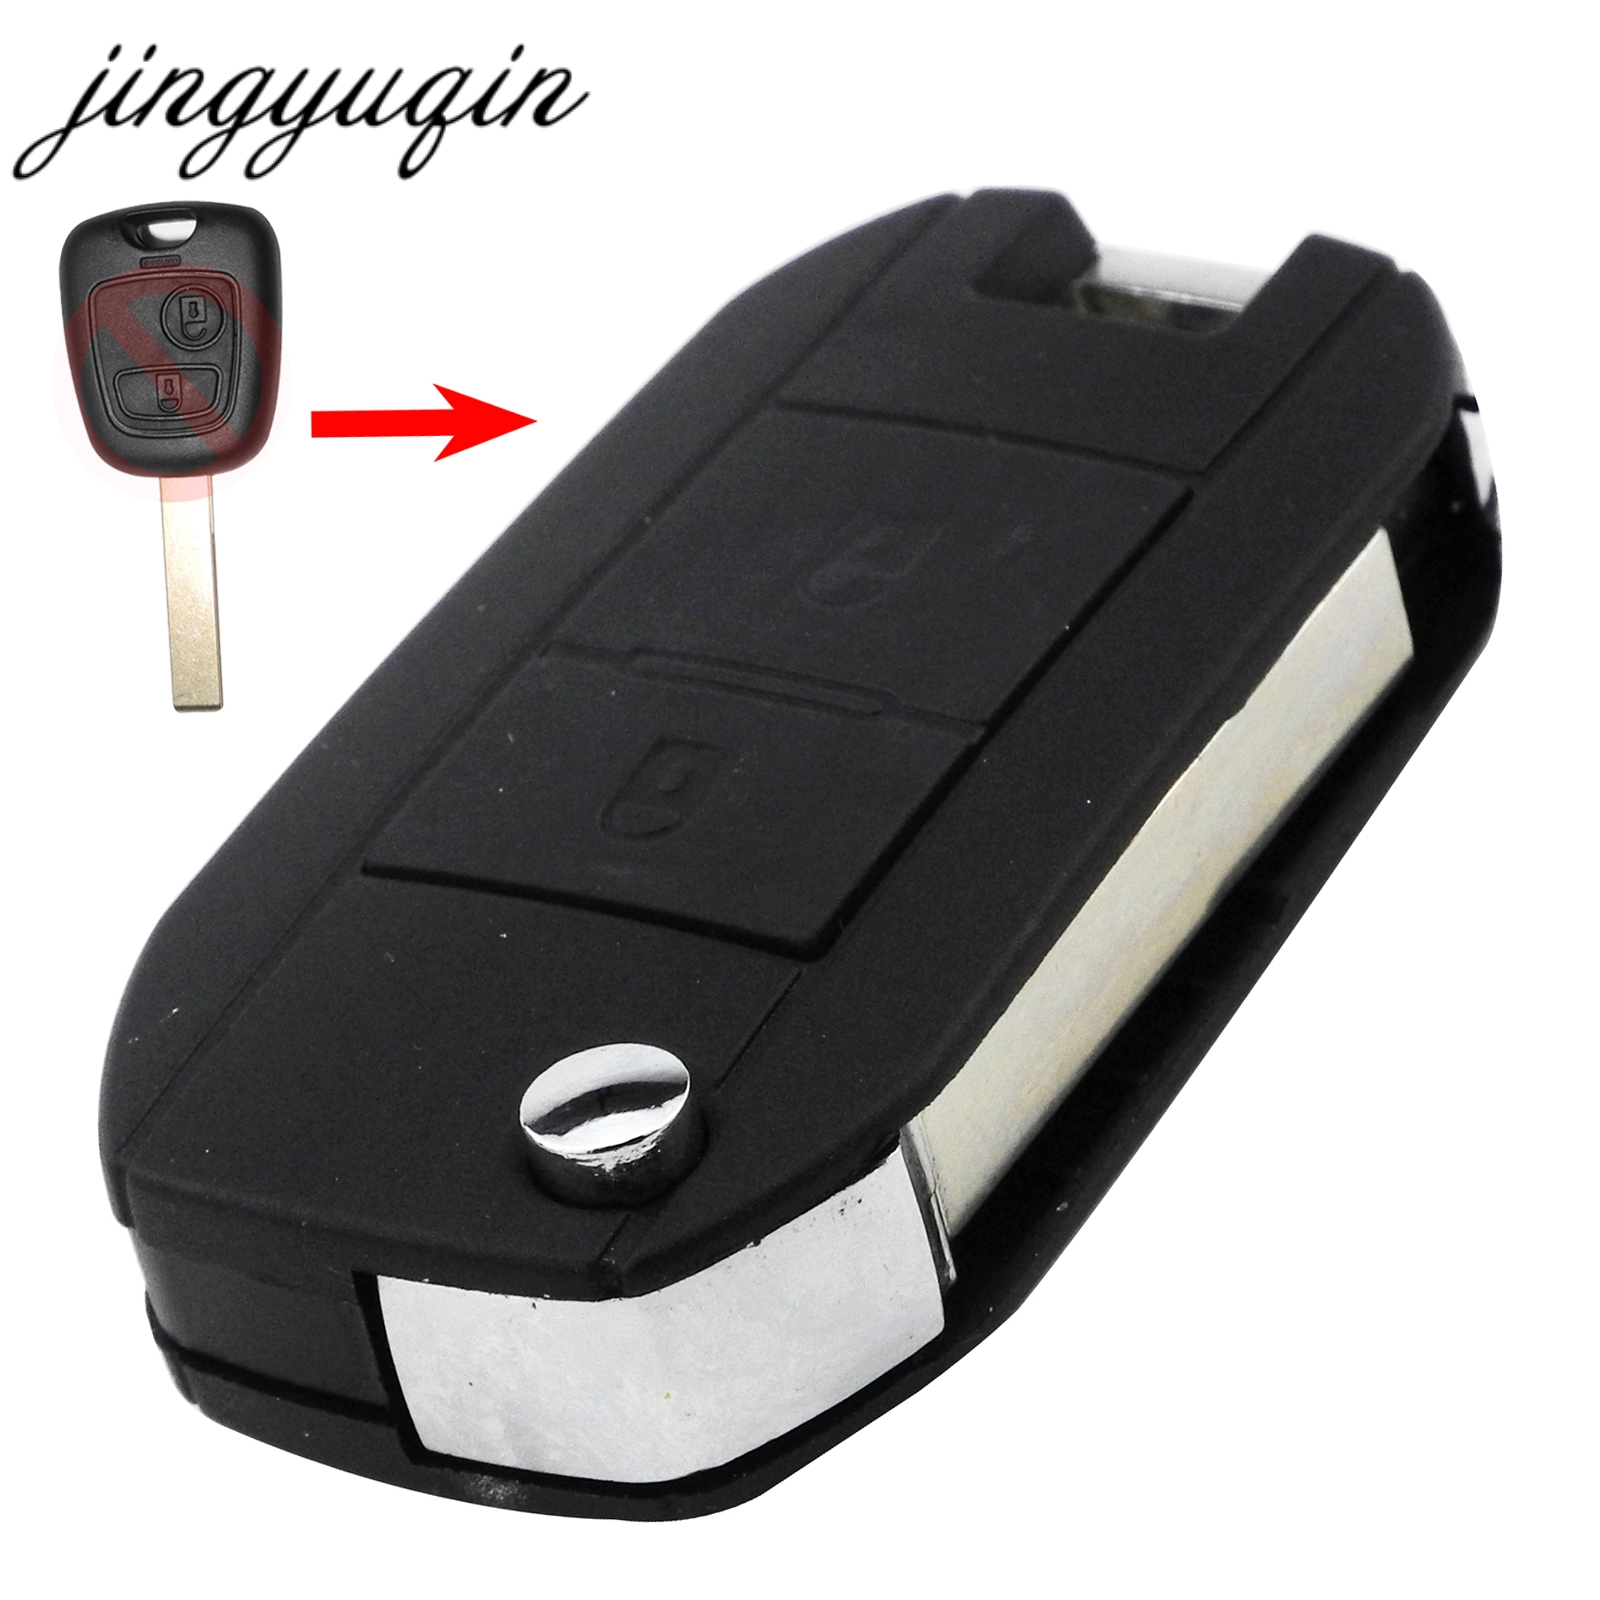 Jingyuqin VA2/HCA Car Flip Folding Key Shell For Peugeot 307 107 207 607 407 Modified Remote Entry Key Fob Case 2 Buttons